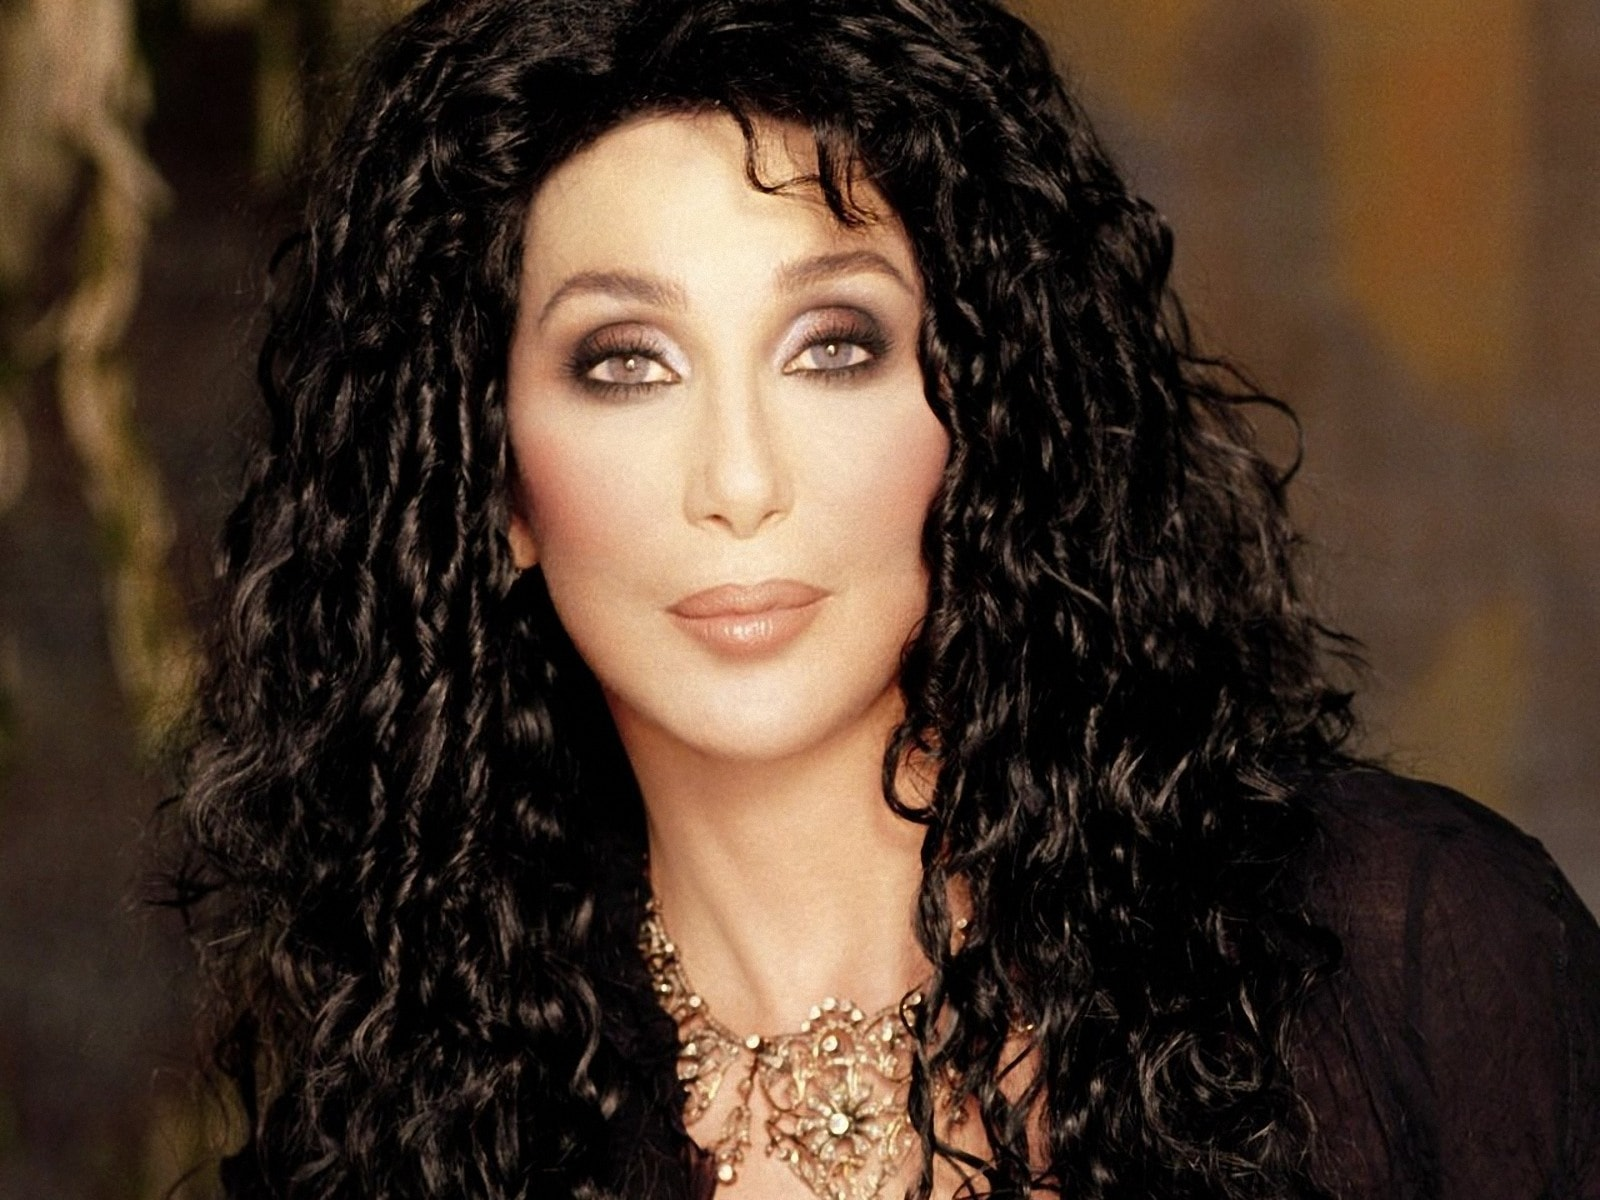 Cher widescreen wallpapers